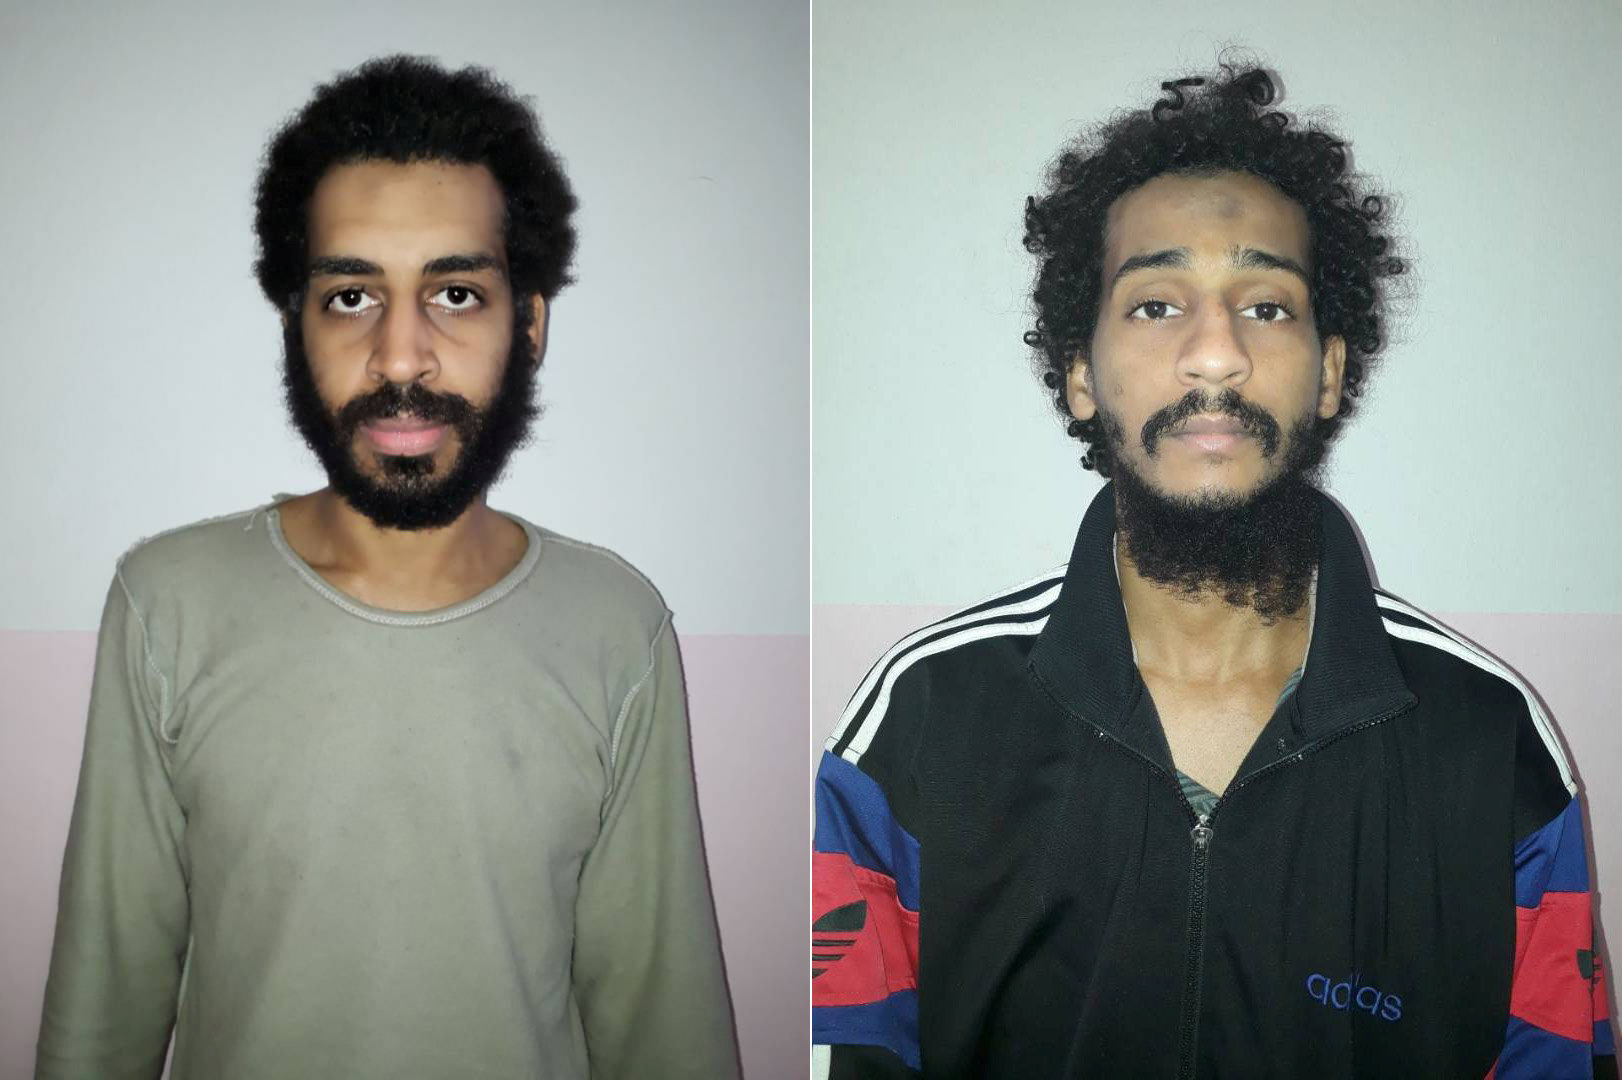 Alexanda Amon Kotey (left) and El Shafee Elsheikh are notorious for their alleged role in the kidnapping, torture and killing of Western hostages in Syria. | REUTERS